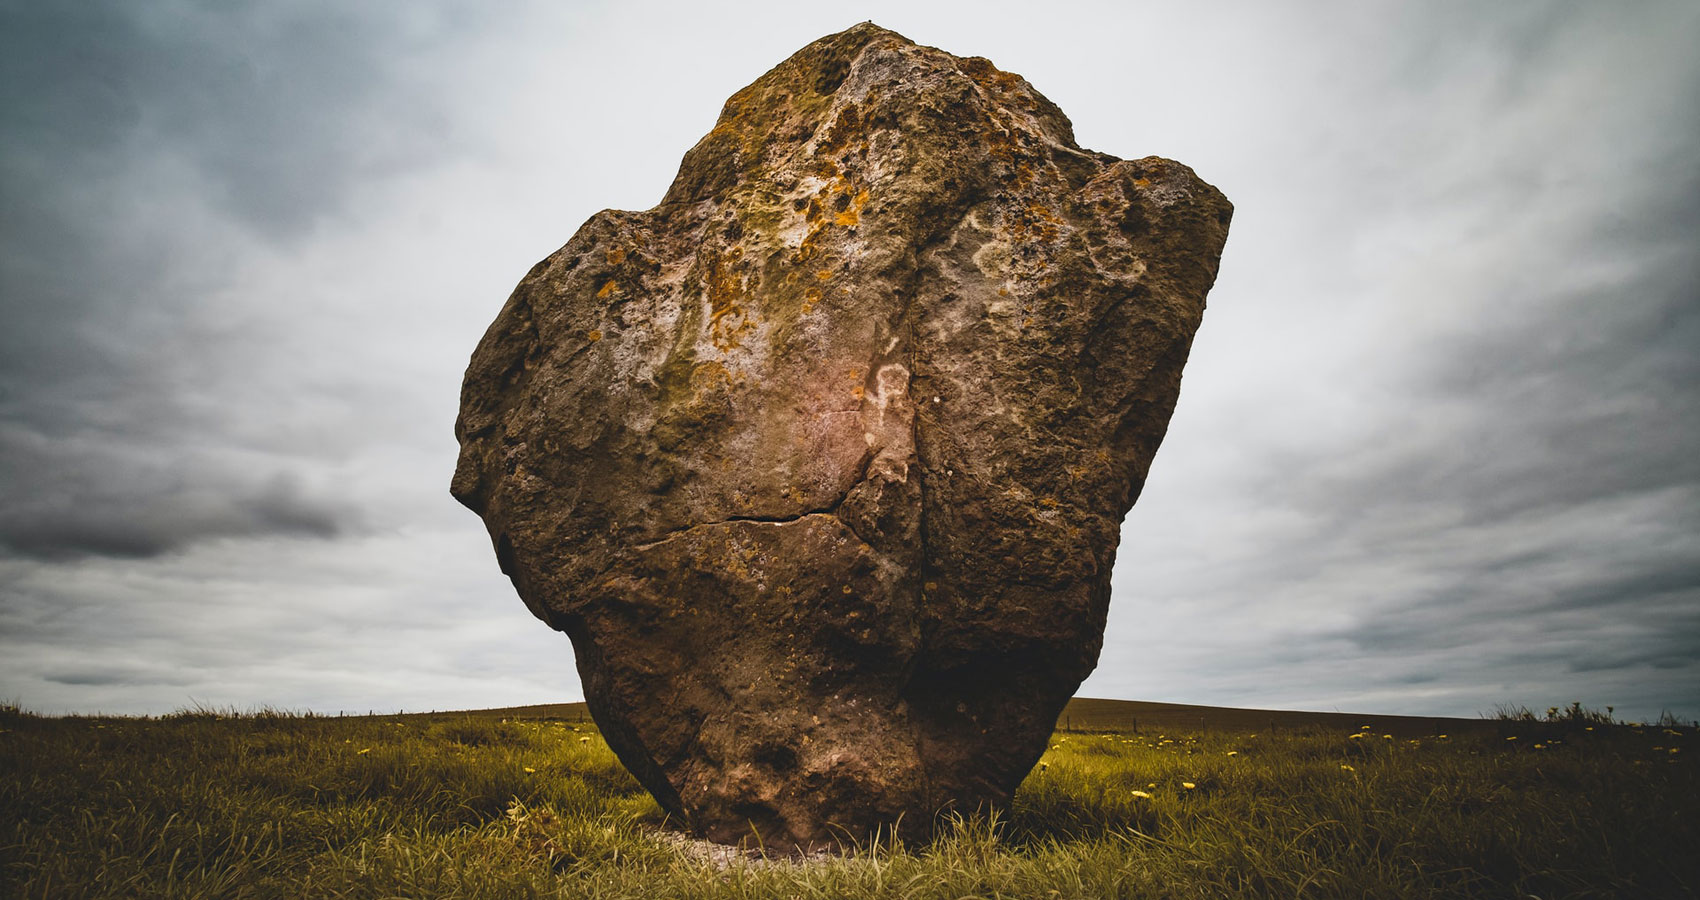 Lay Under This Rock, micropoetry written by Lucy at Spillwords.com